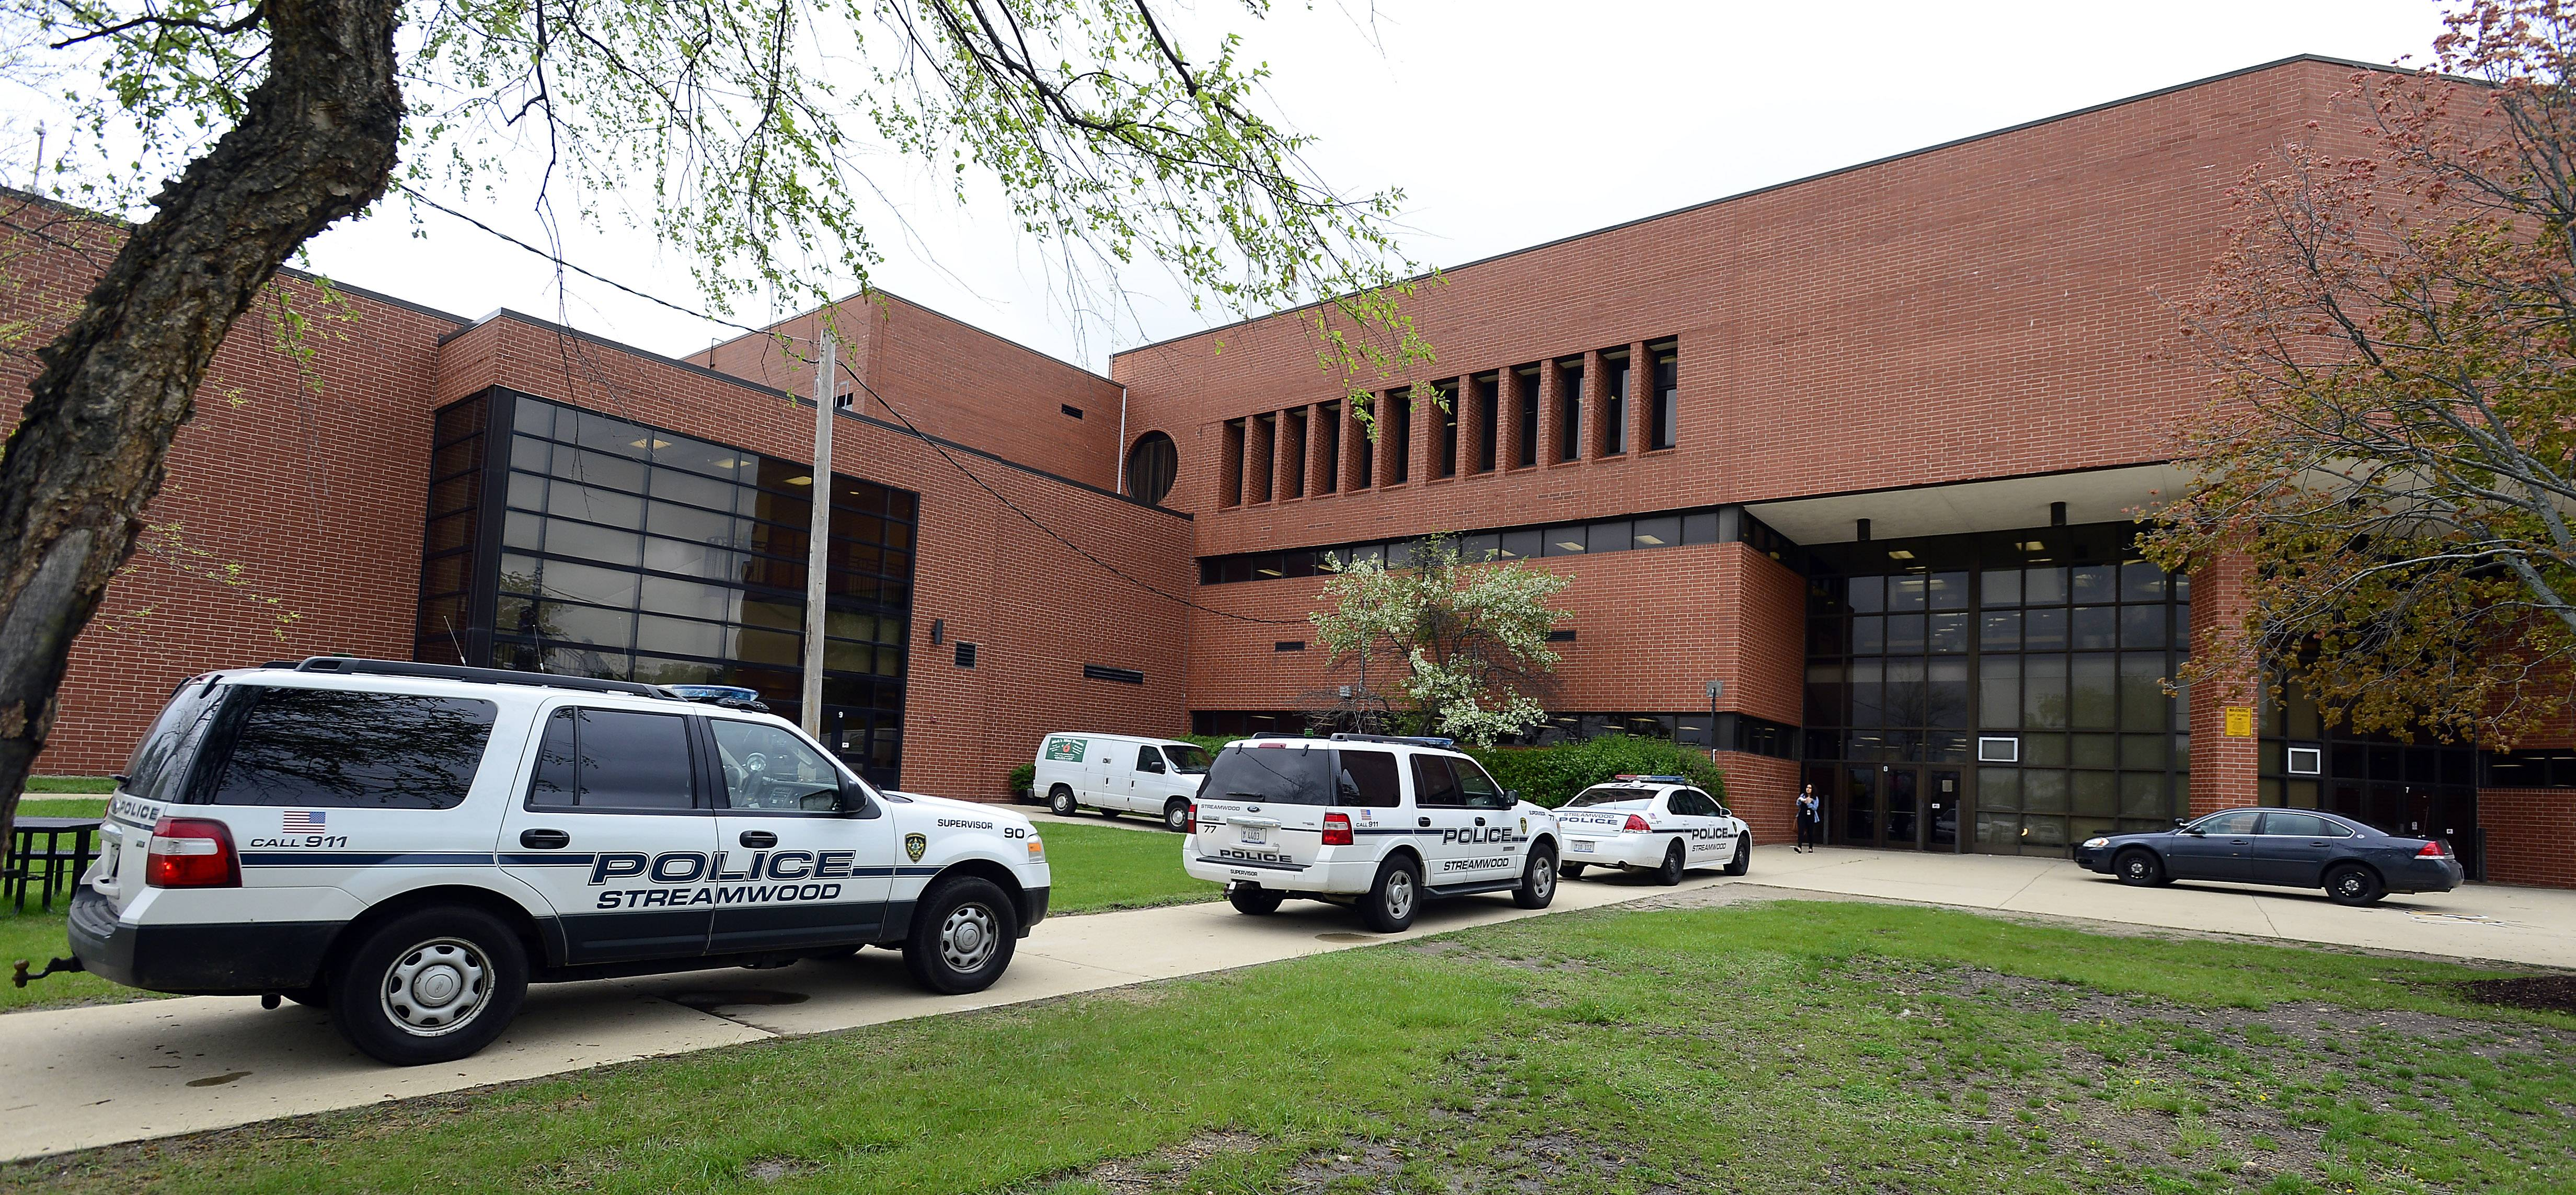 More than a dozen police patrol cars responded to a fight shortly before noon Tuesday at Streamwood High School. Six students were arrested as a result of the altercation, which caused no significant injuries, according to police.